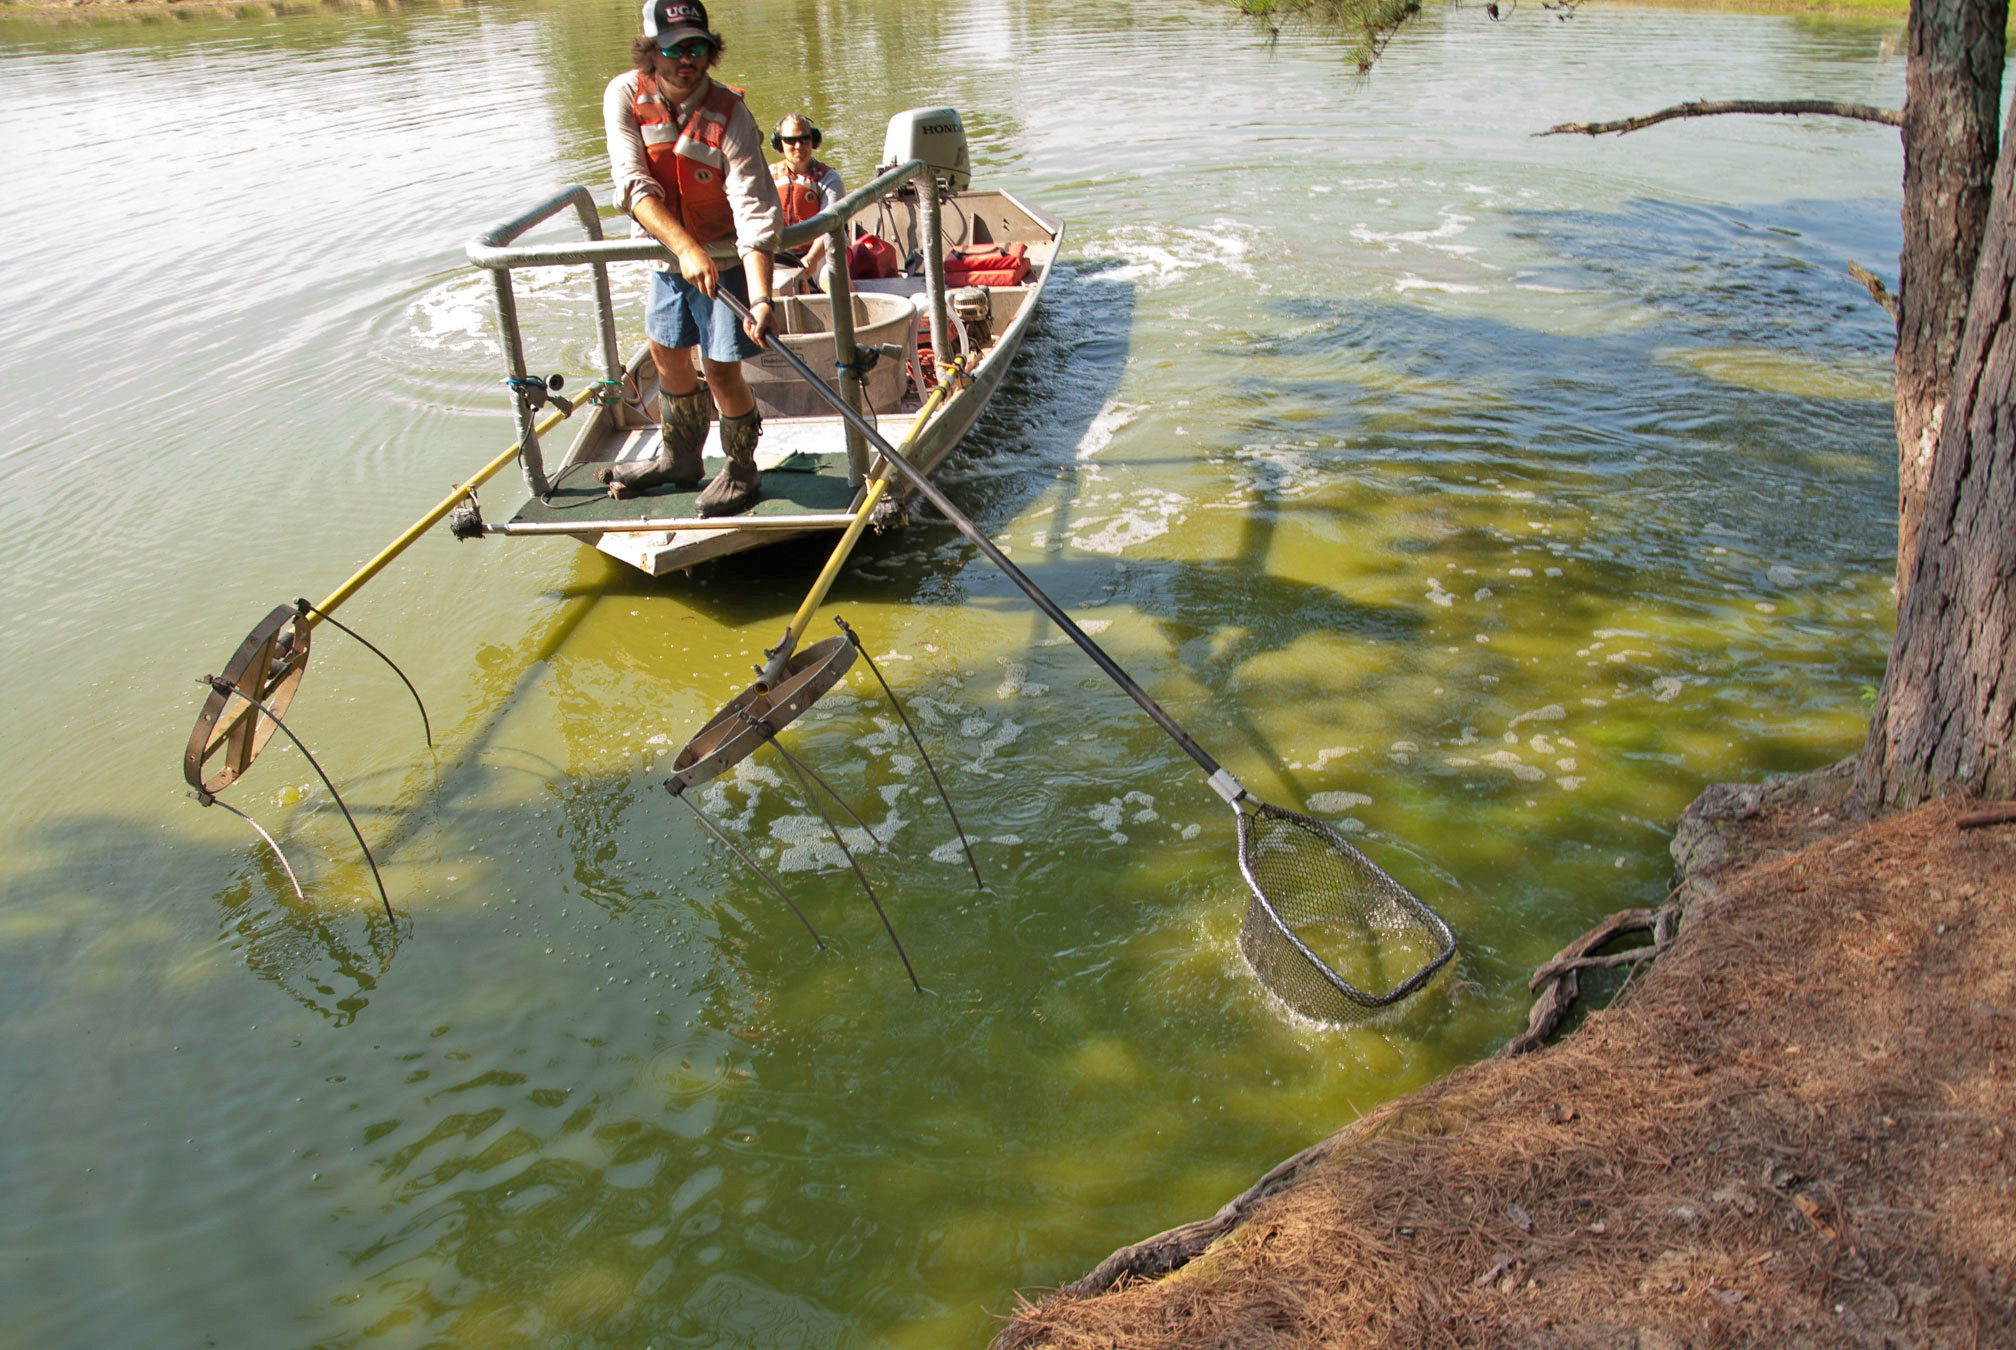 With the summer heat and sporadic rainfall, conditions are right for farm ponds to become inundated with harmful algal blooms.